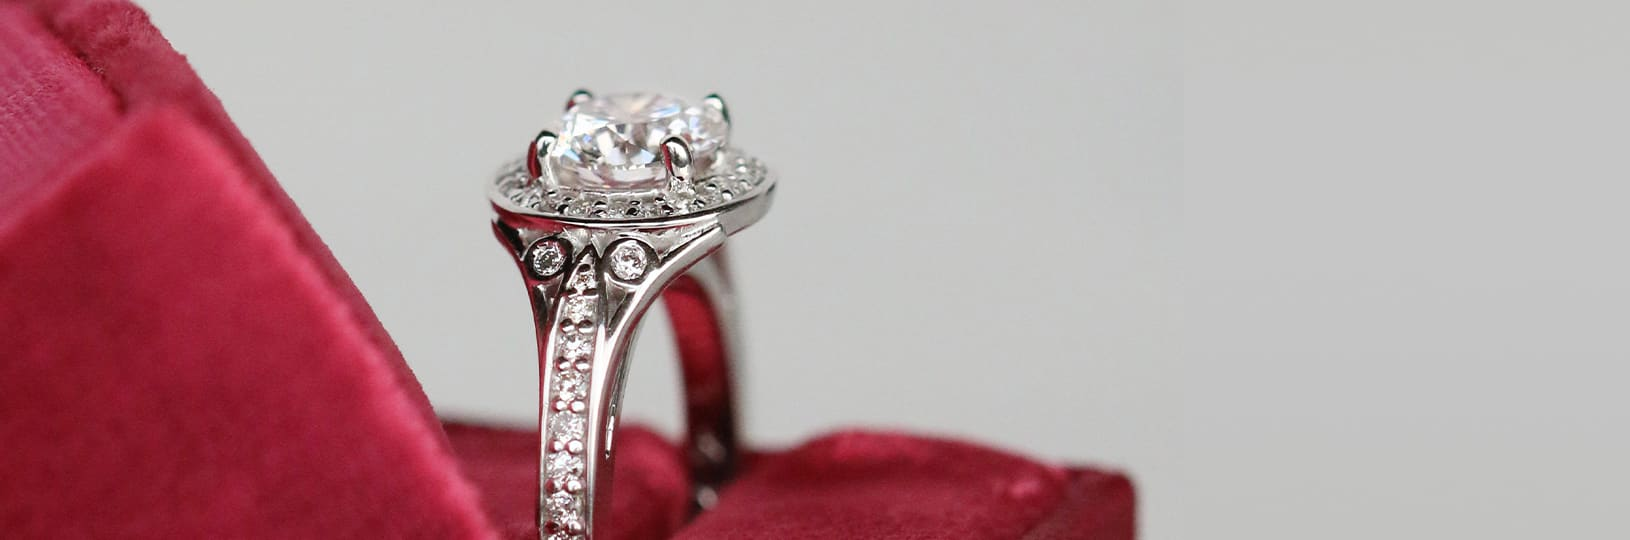 A lab grown diamond engagement ring